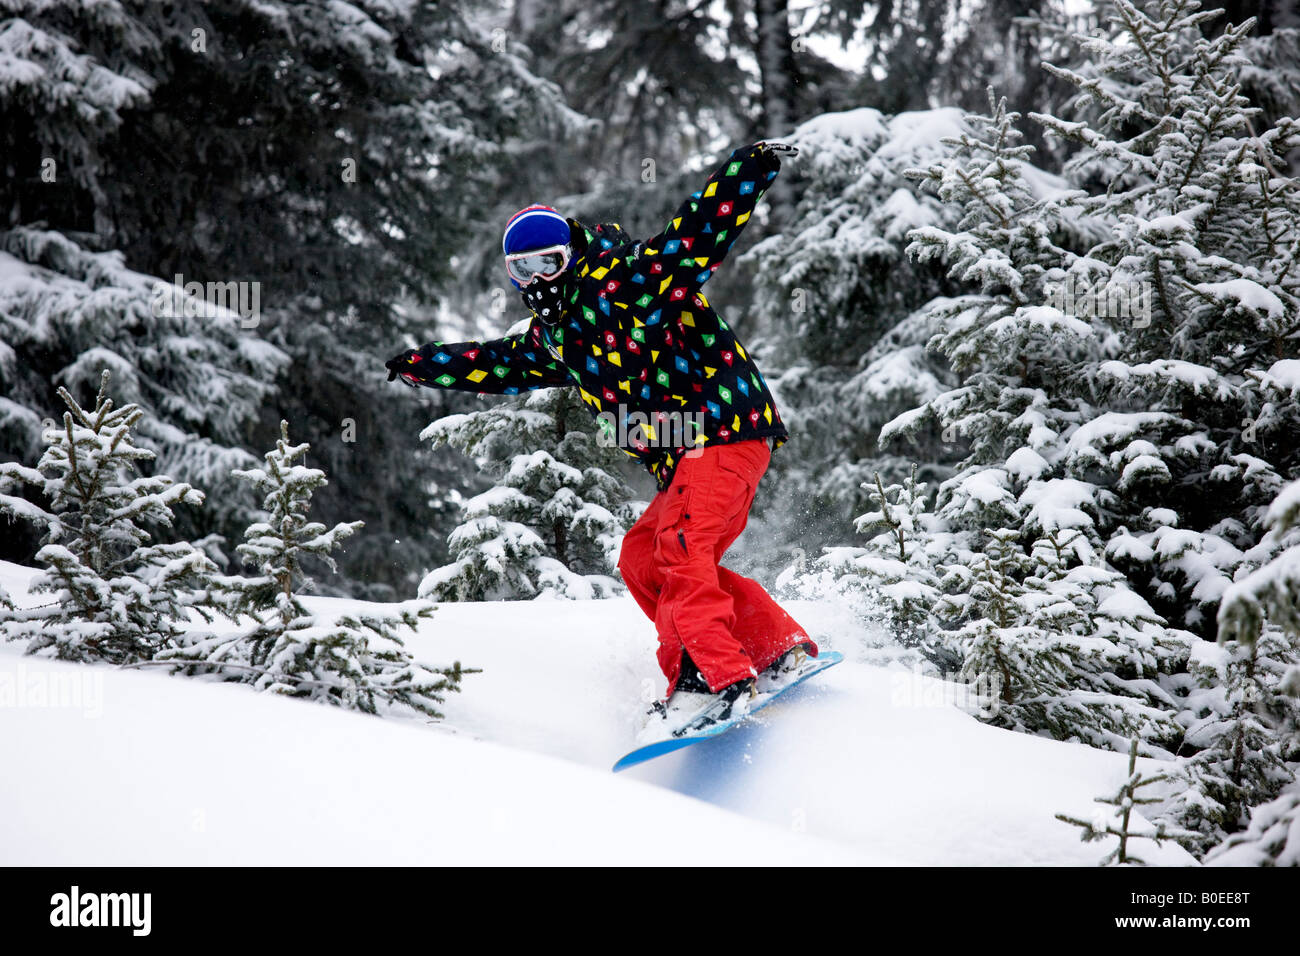 Snowboarder riding the trees in St Foy de Tarrentaise. - Stock Image